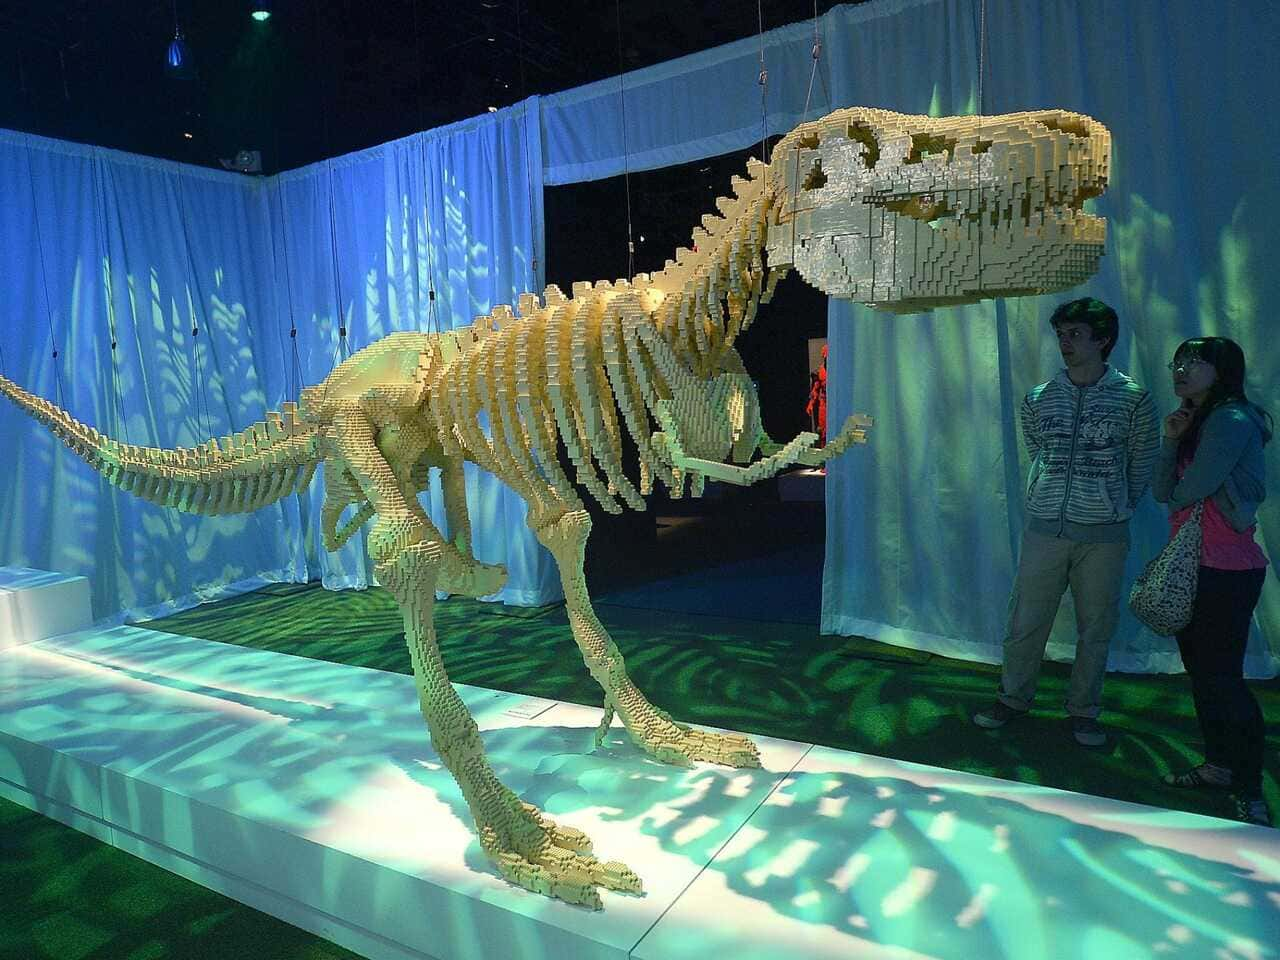 Lego Exhibit At New York Hall of Science